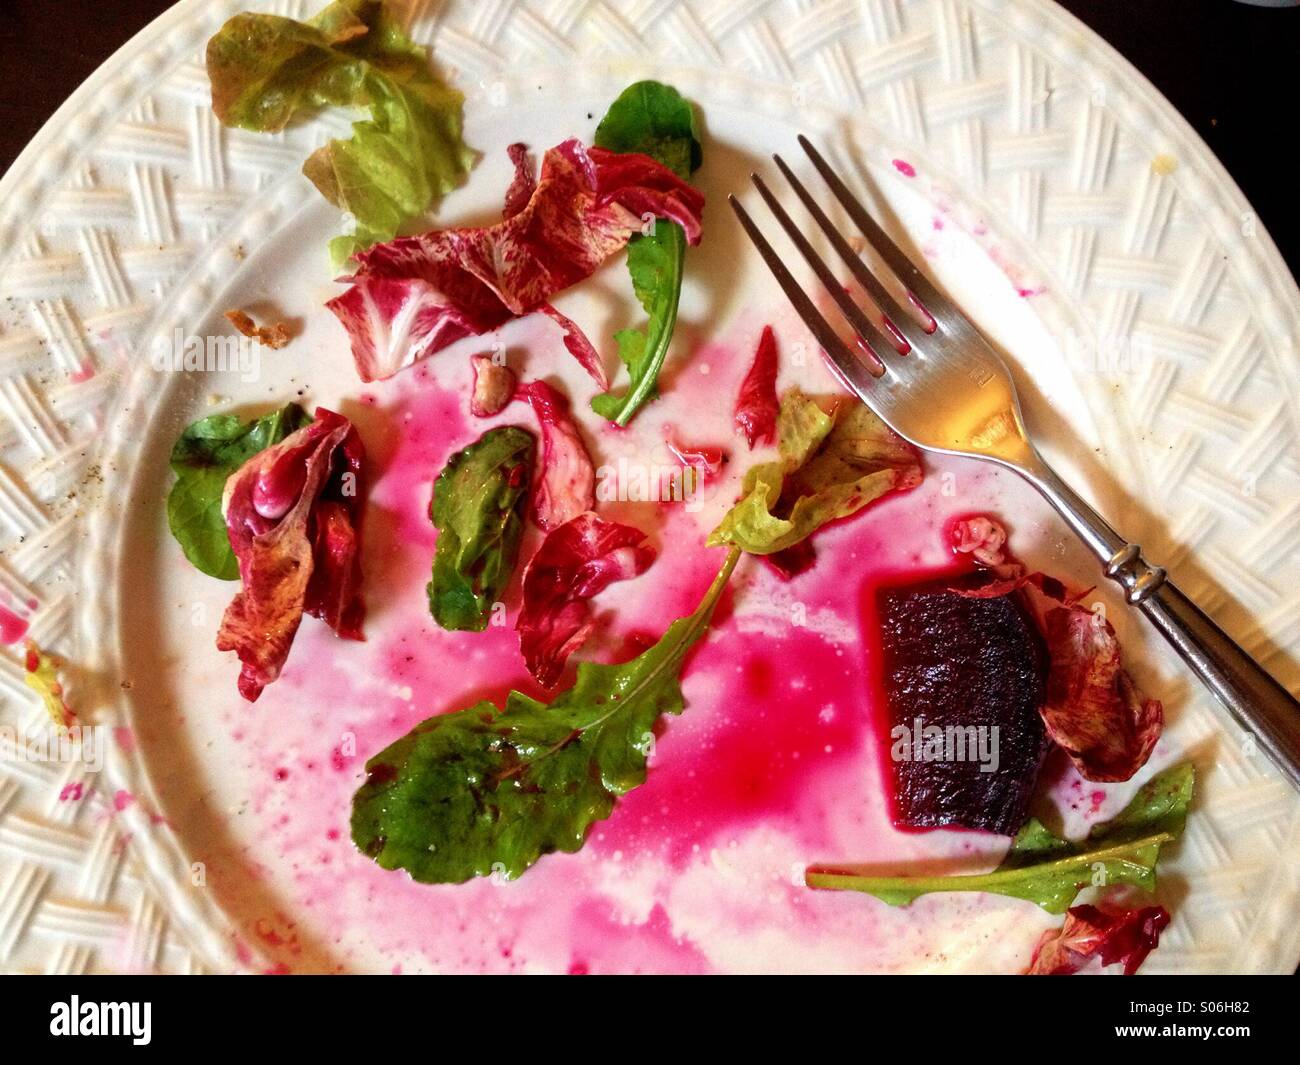 Just finished beet salad on white plate Stock Photo